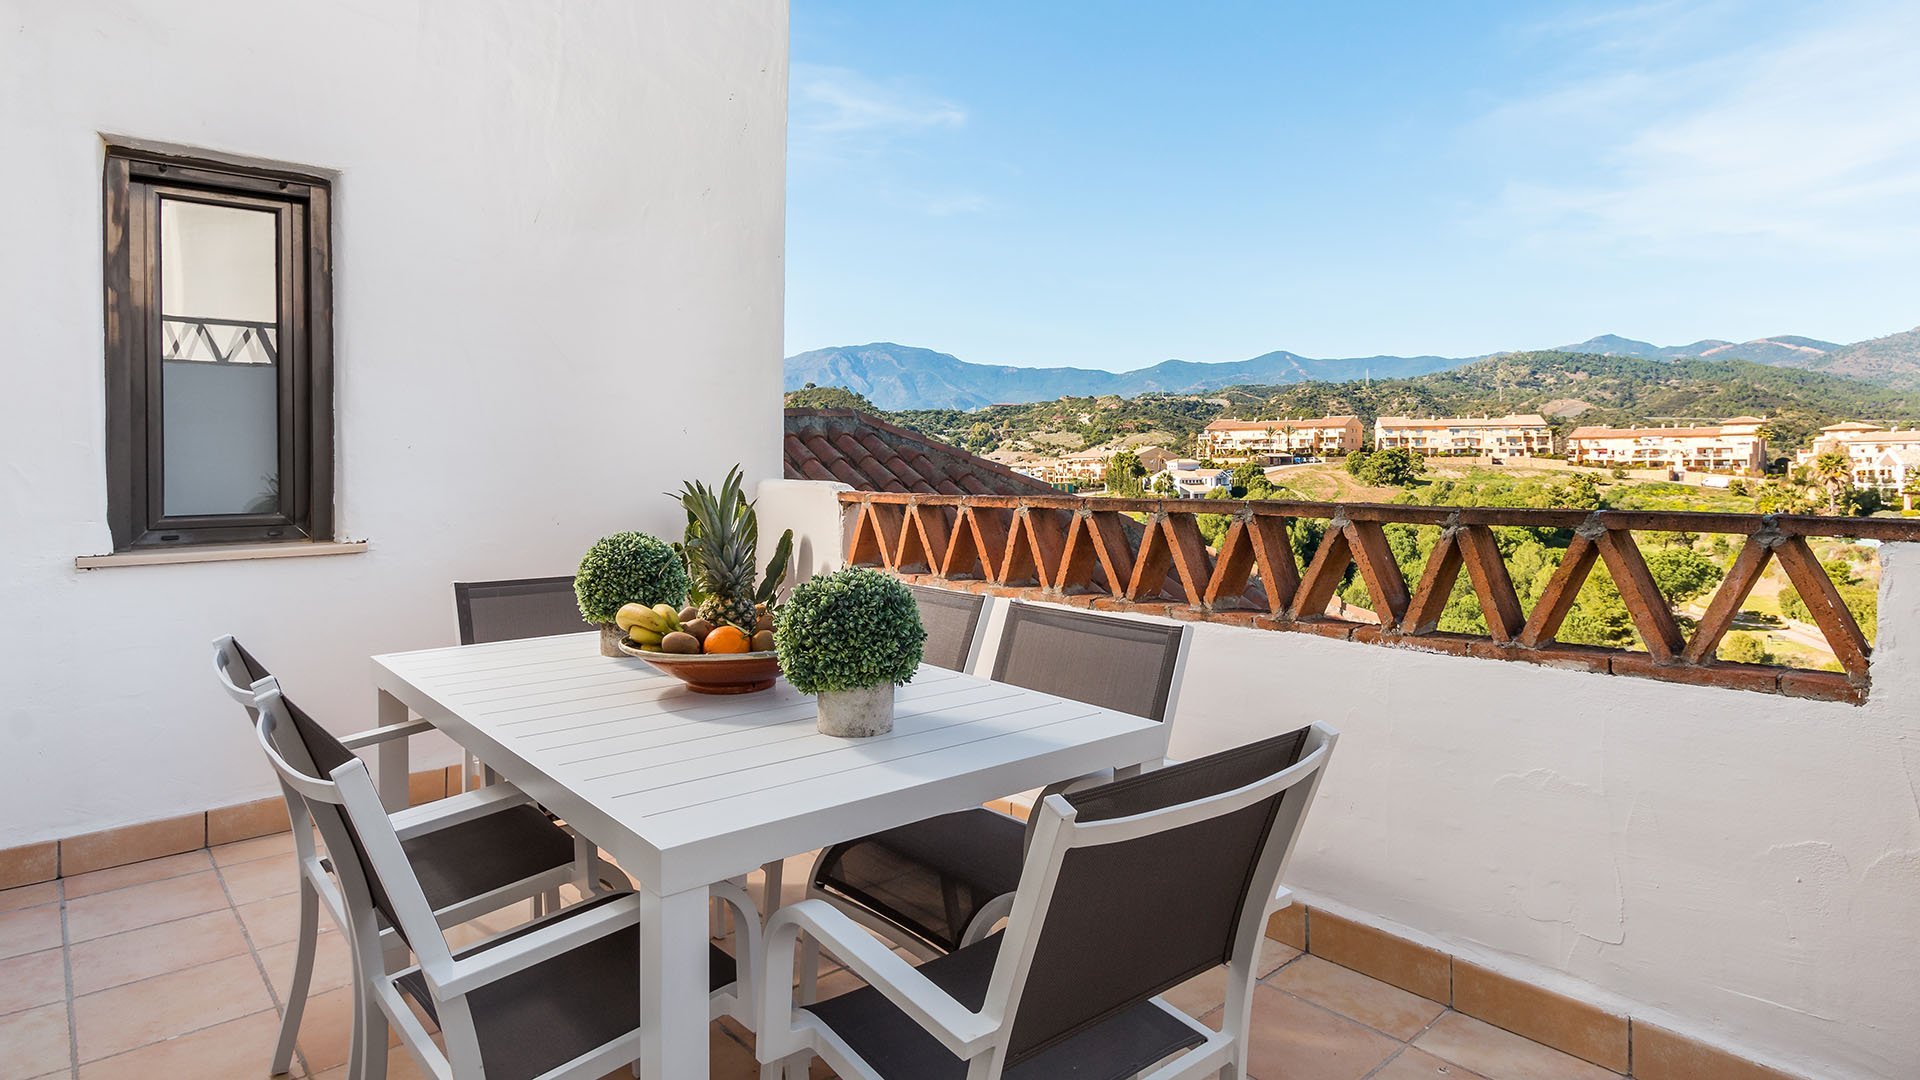 Sunset Golf Estepona: Penthouses in a Mediterranean residential area close to Marbella